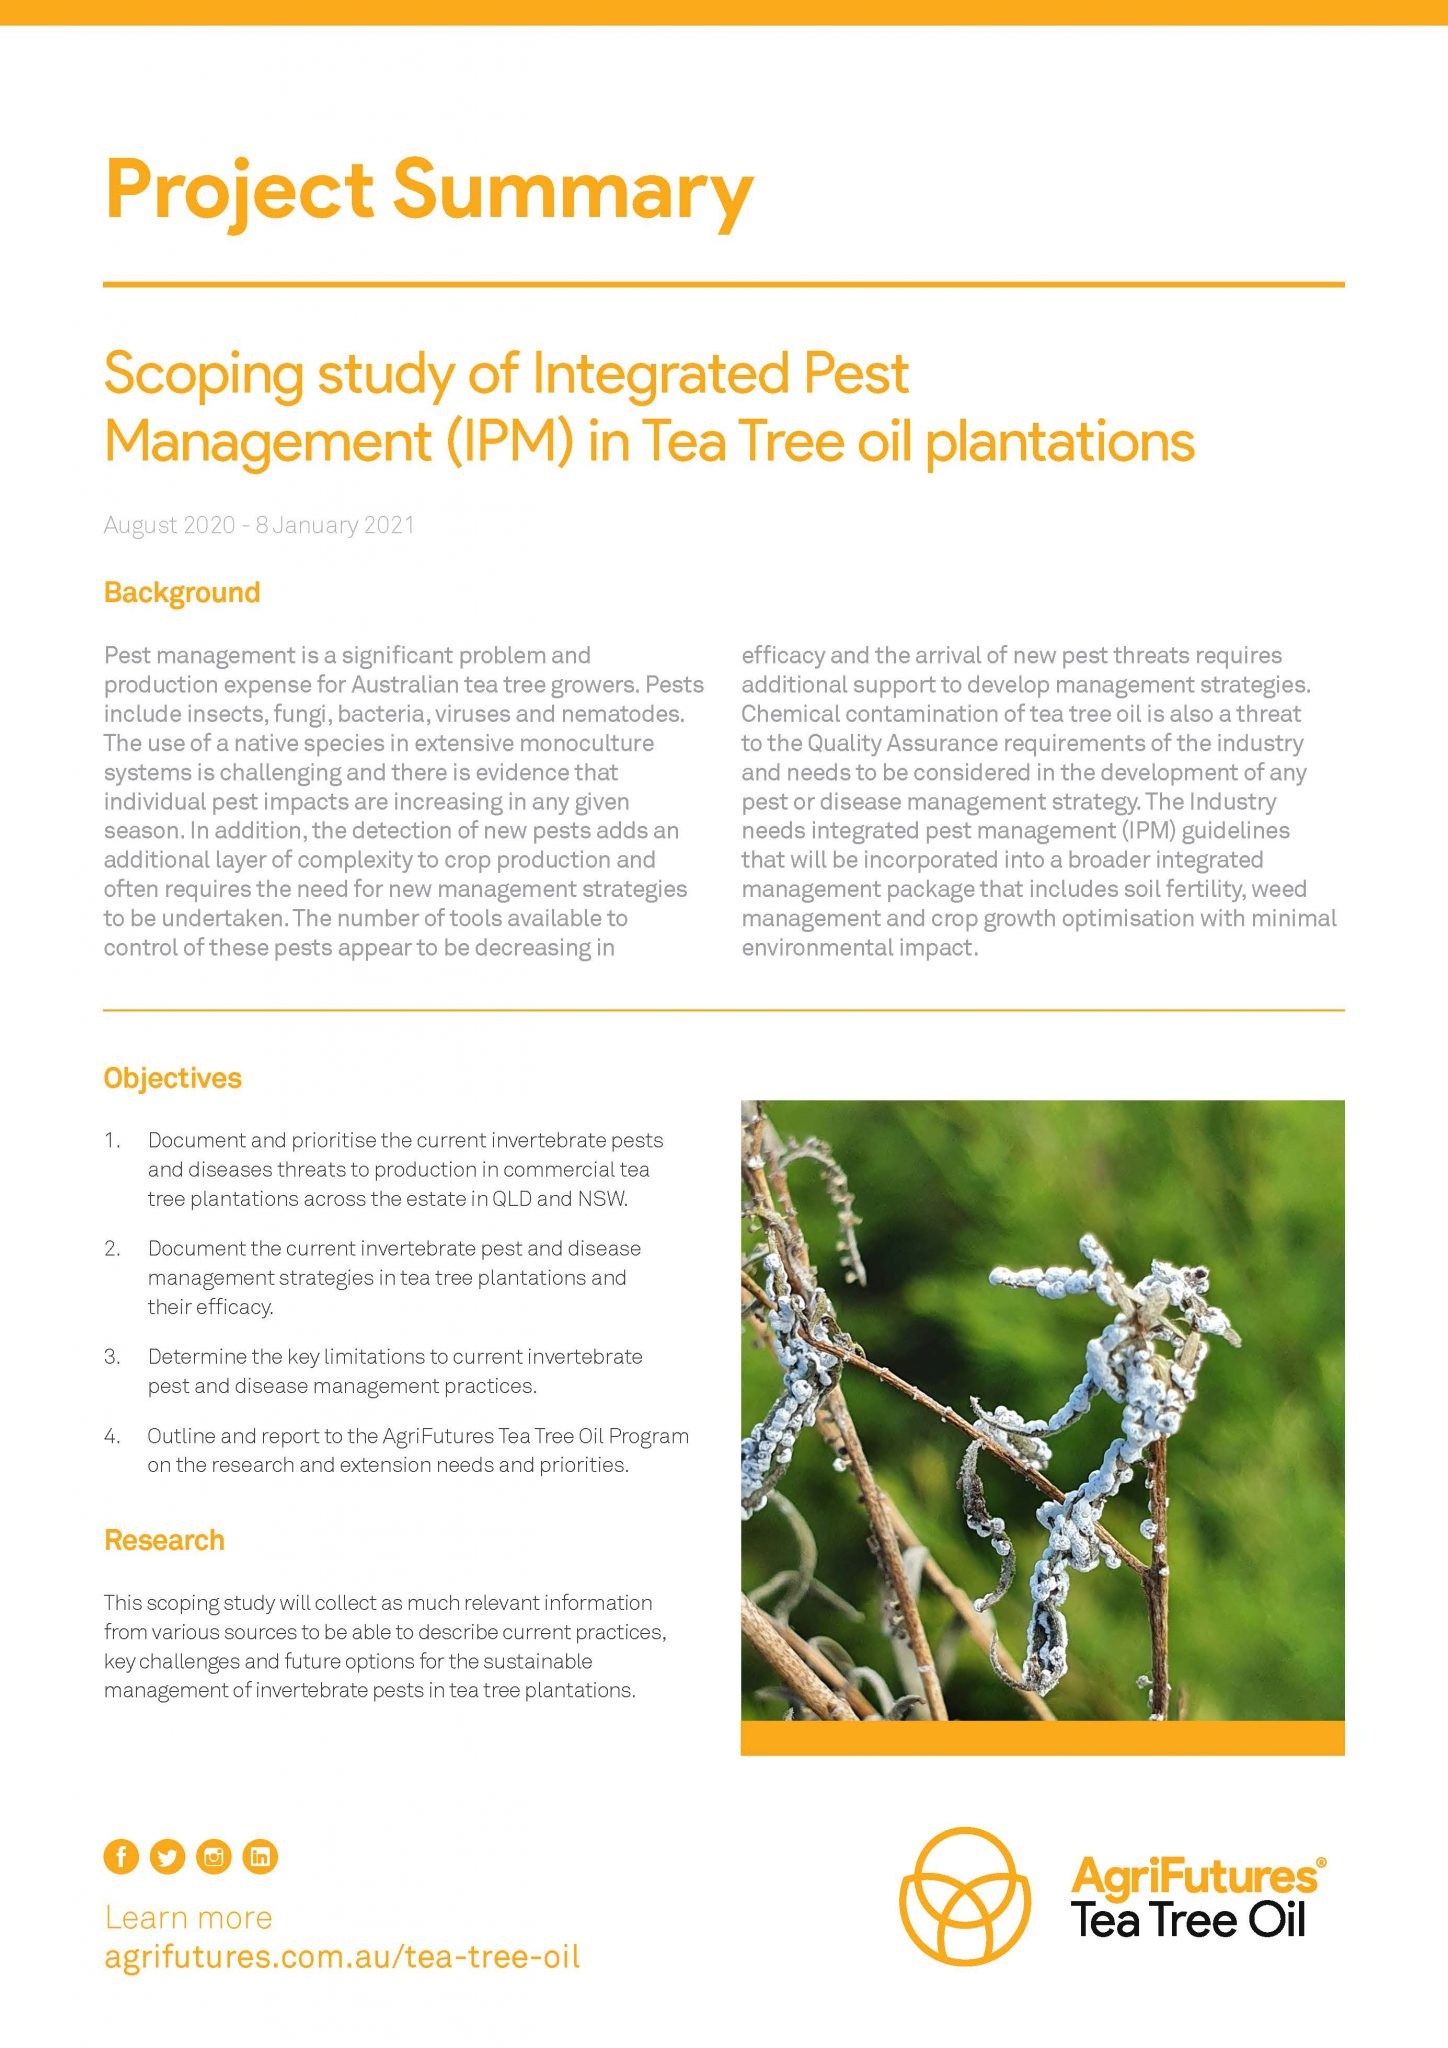 Project Summary: Scoping study of Integrated Pest Management (IPM) in tea tree oil plantations - image